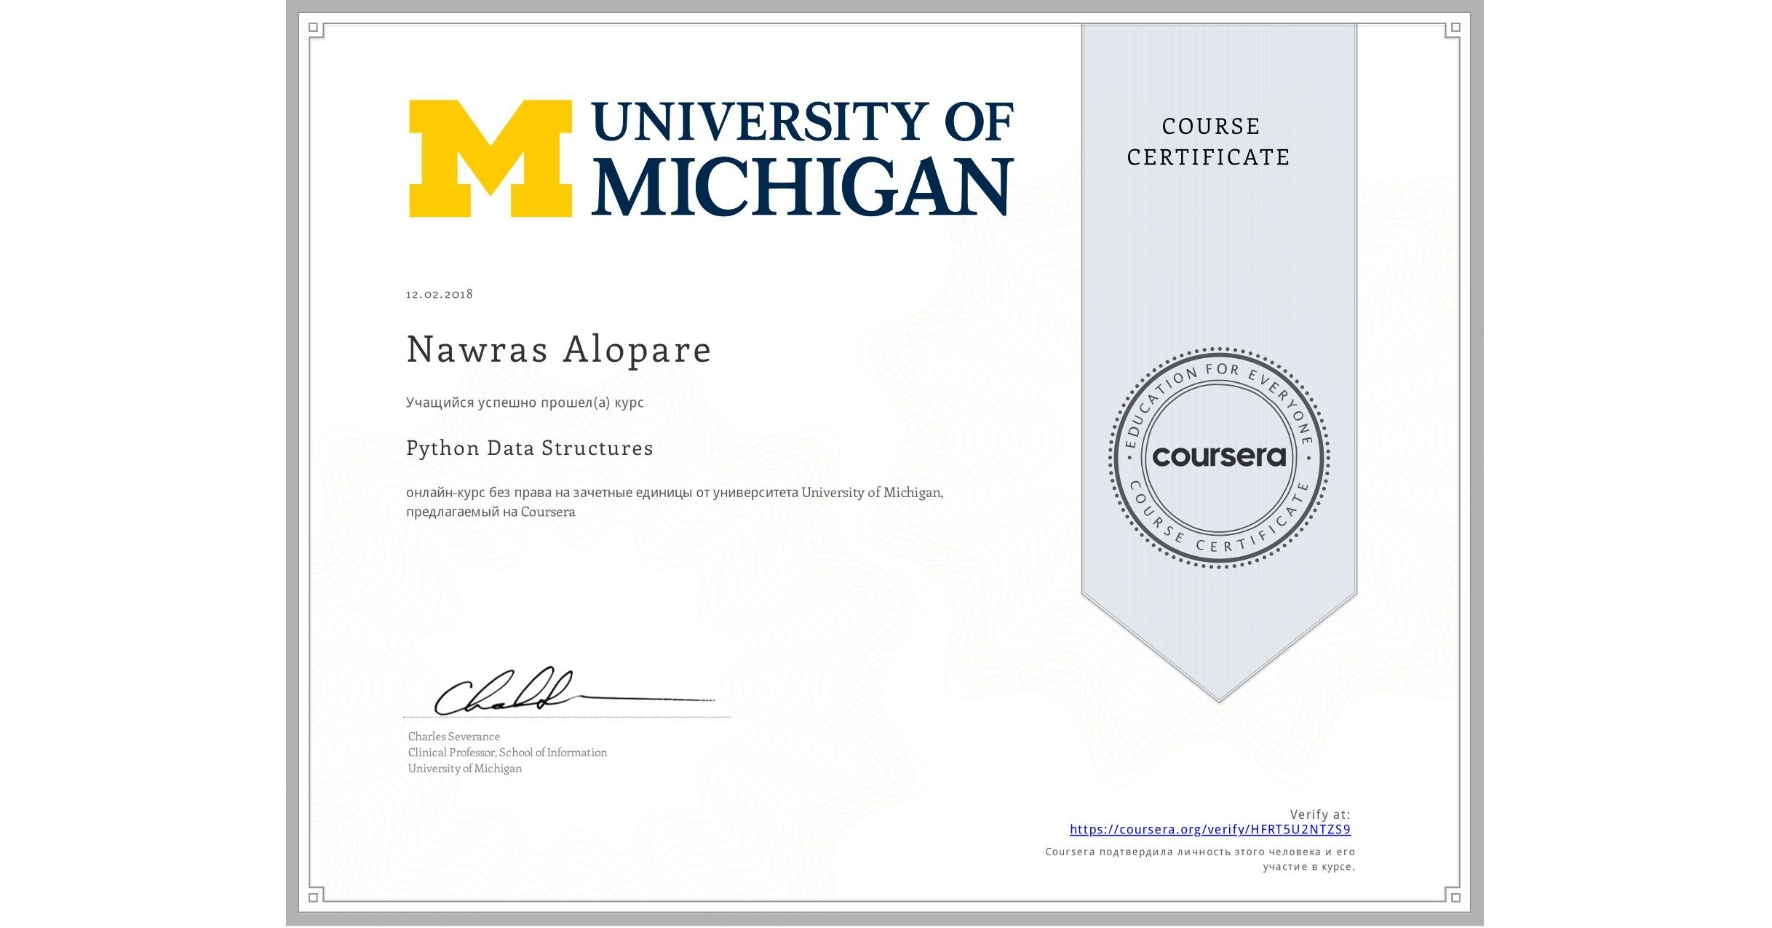 View certificate for Nawras Alopare, Python Data Structures, an online non-credit course authorized by University of Michigan and offered through Coursera